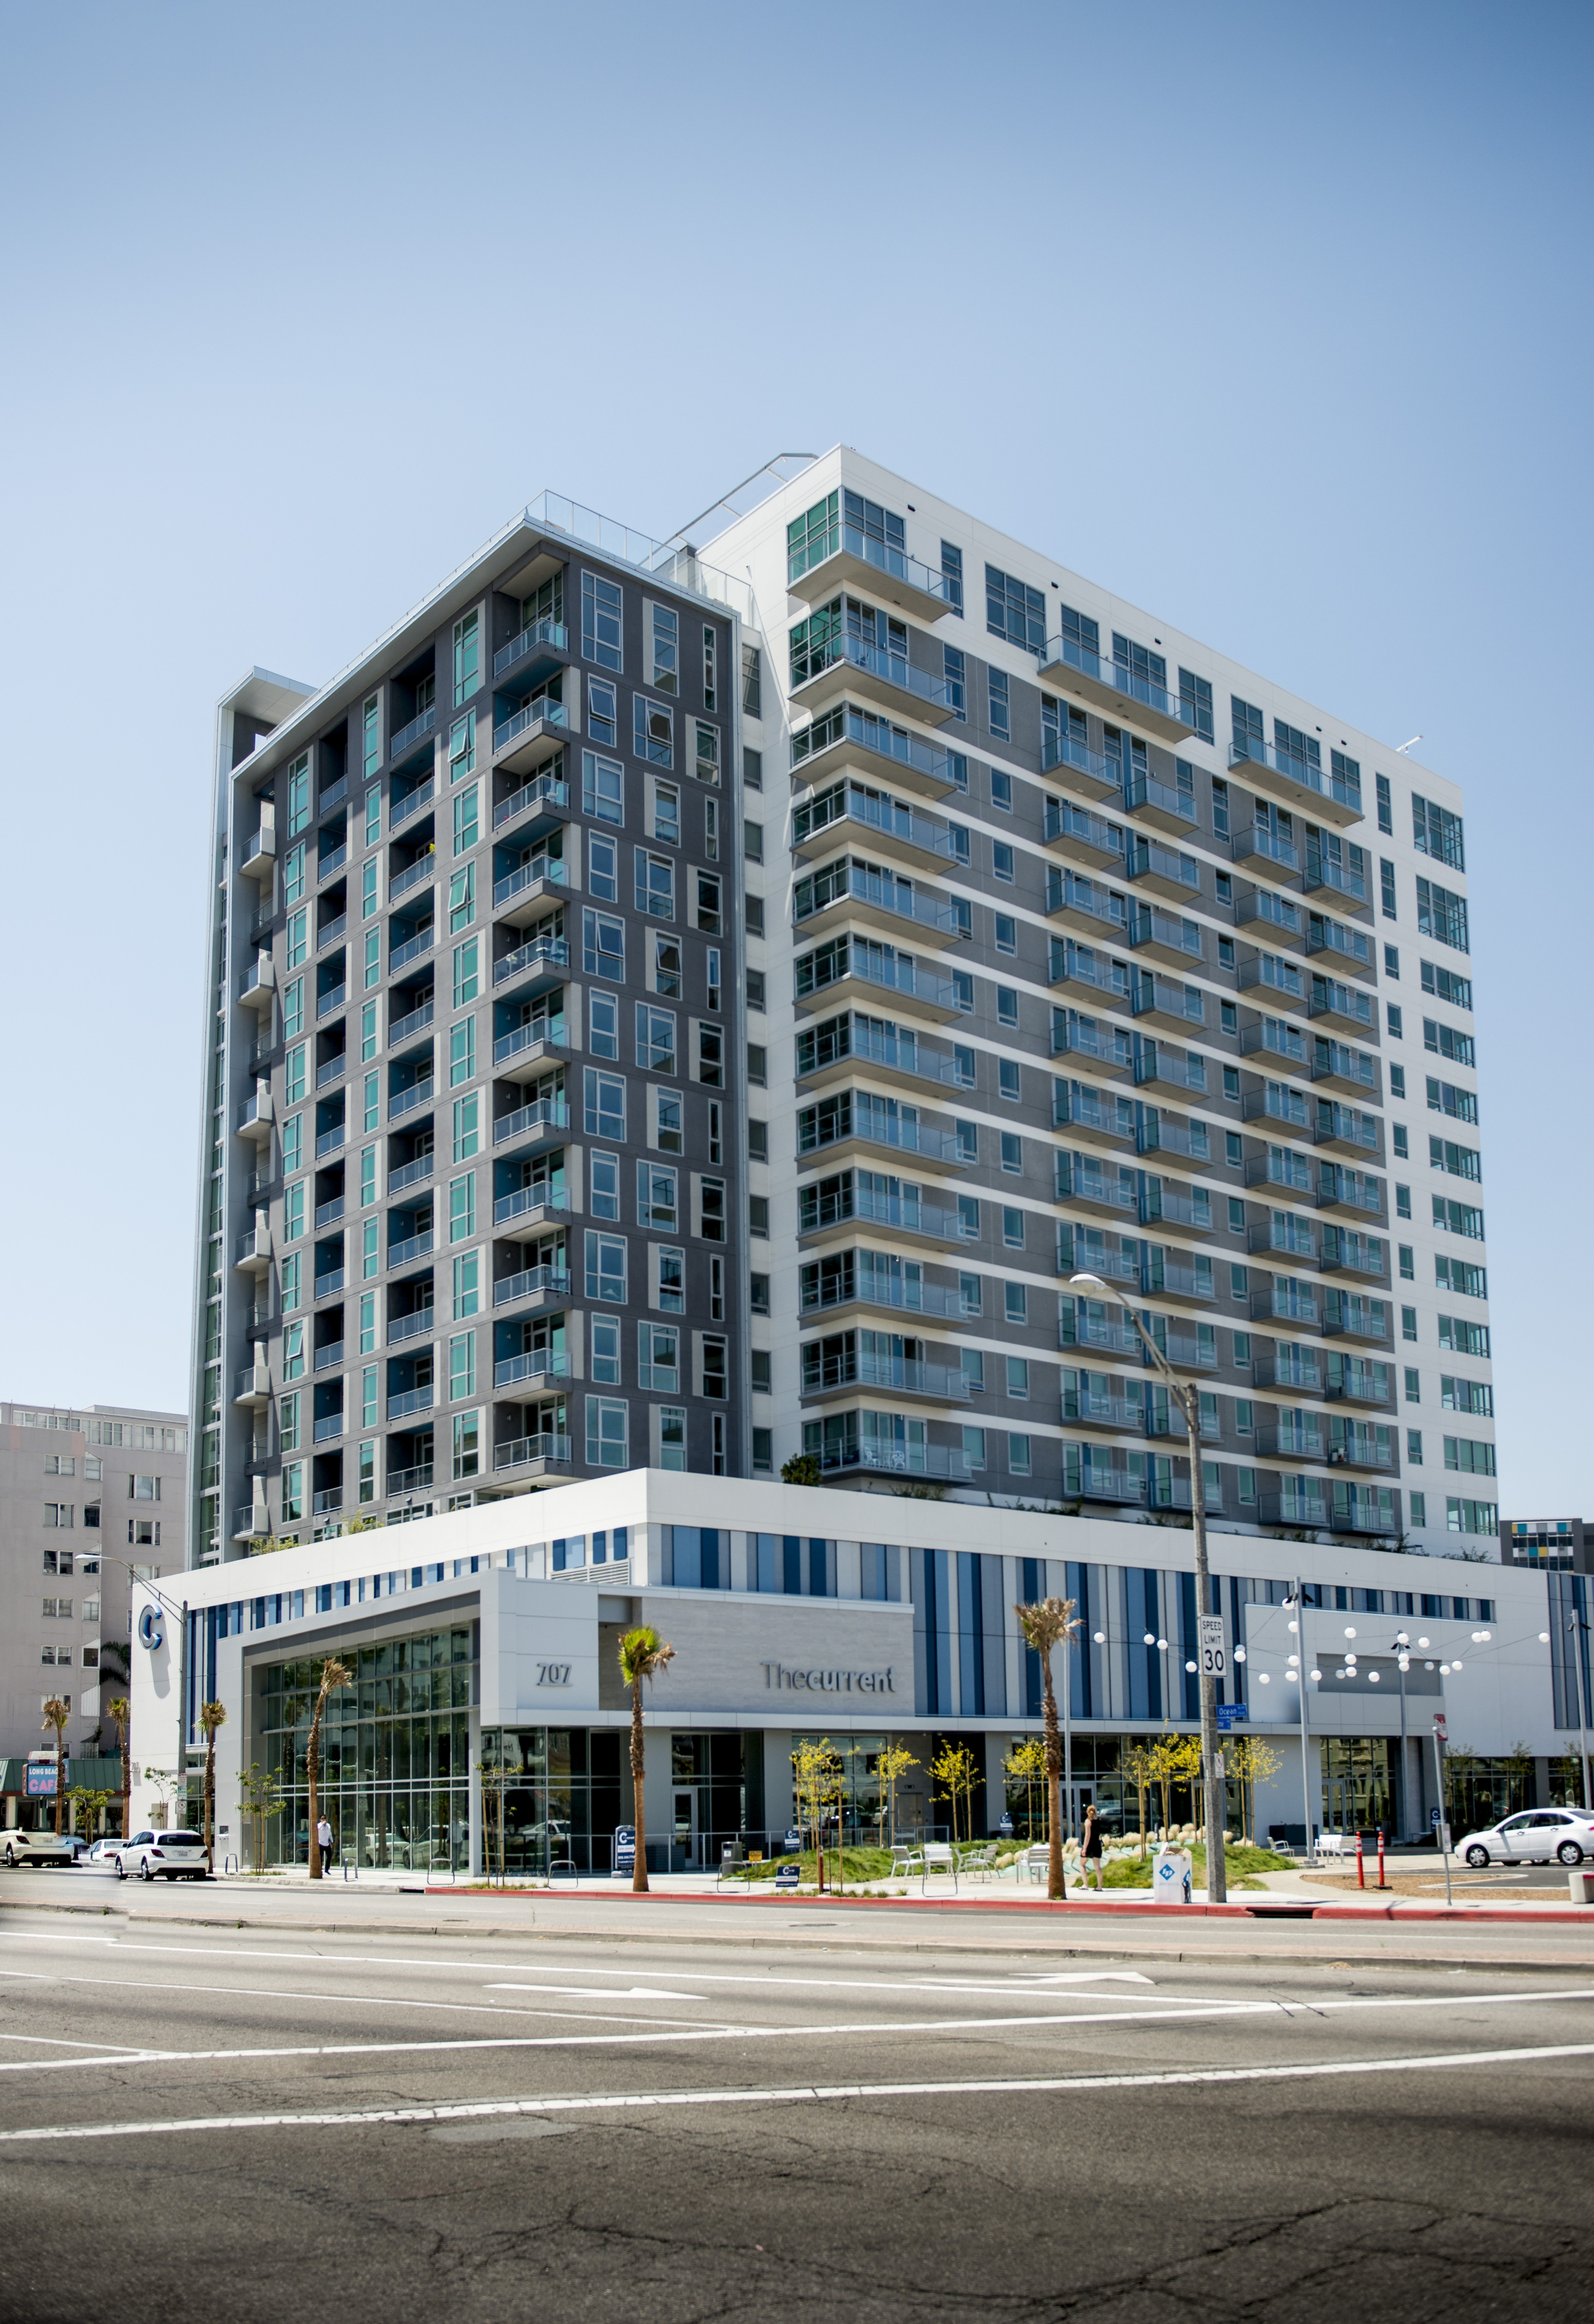 ledcor owned the current luxury highrise in downtown long beach image available marketwire com library mwgo 2016 7 11 11g106109 images currentlb 126 ee782346032a8f69bab44fae123d9b3e jpg